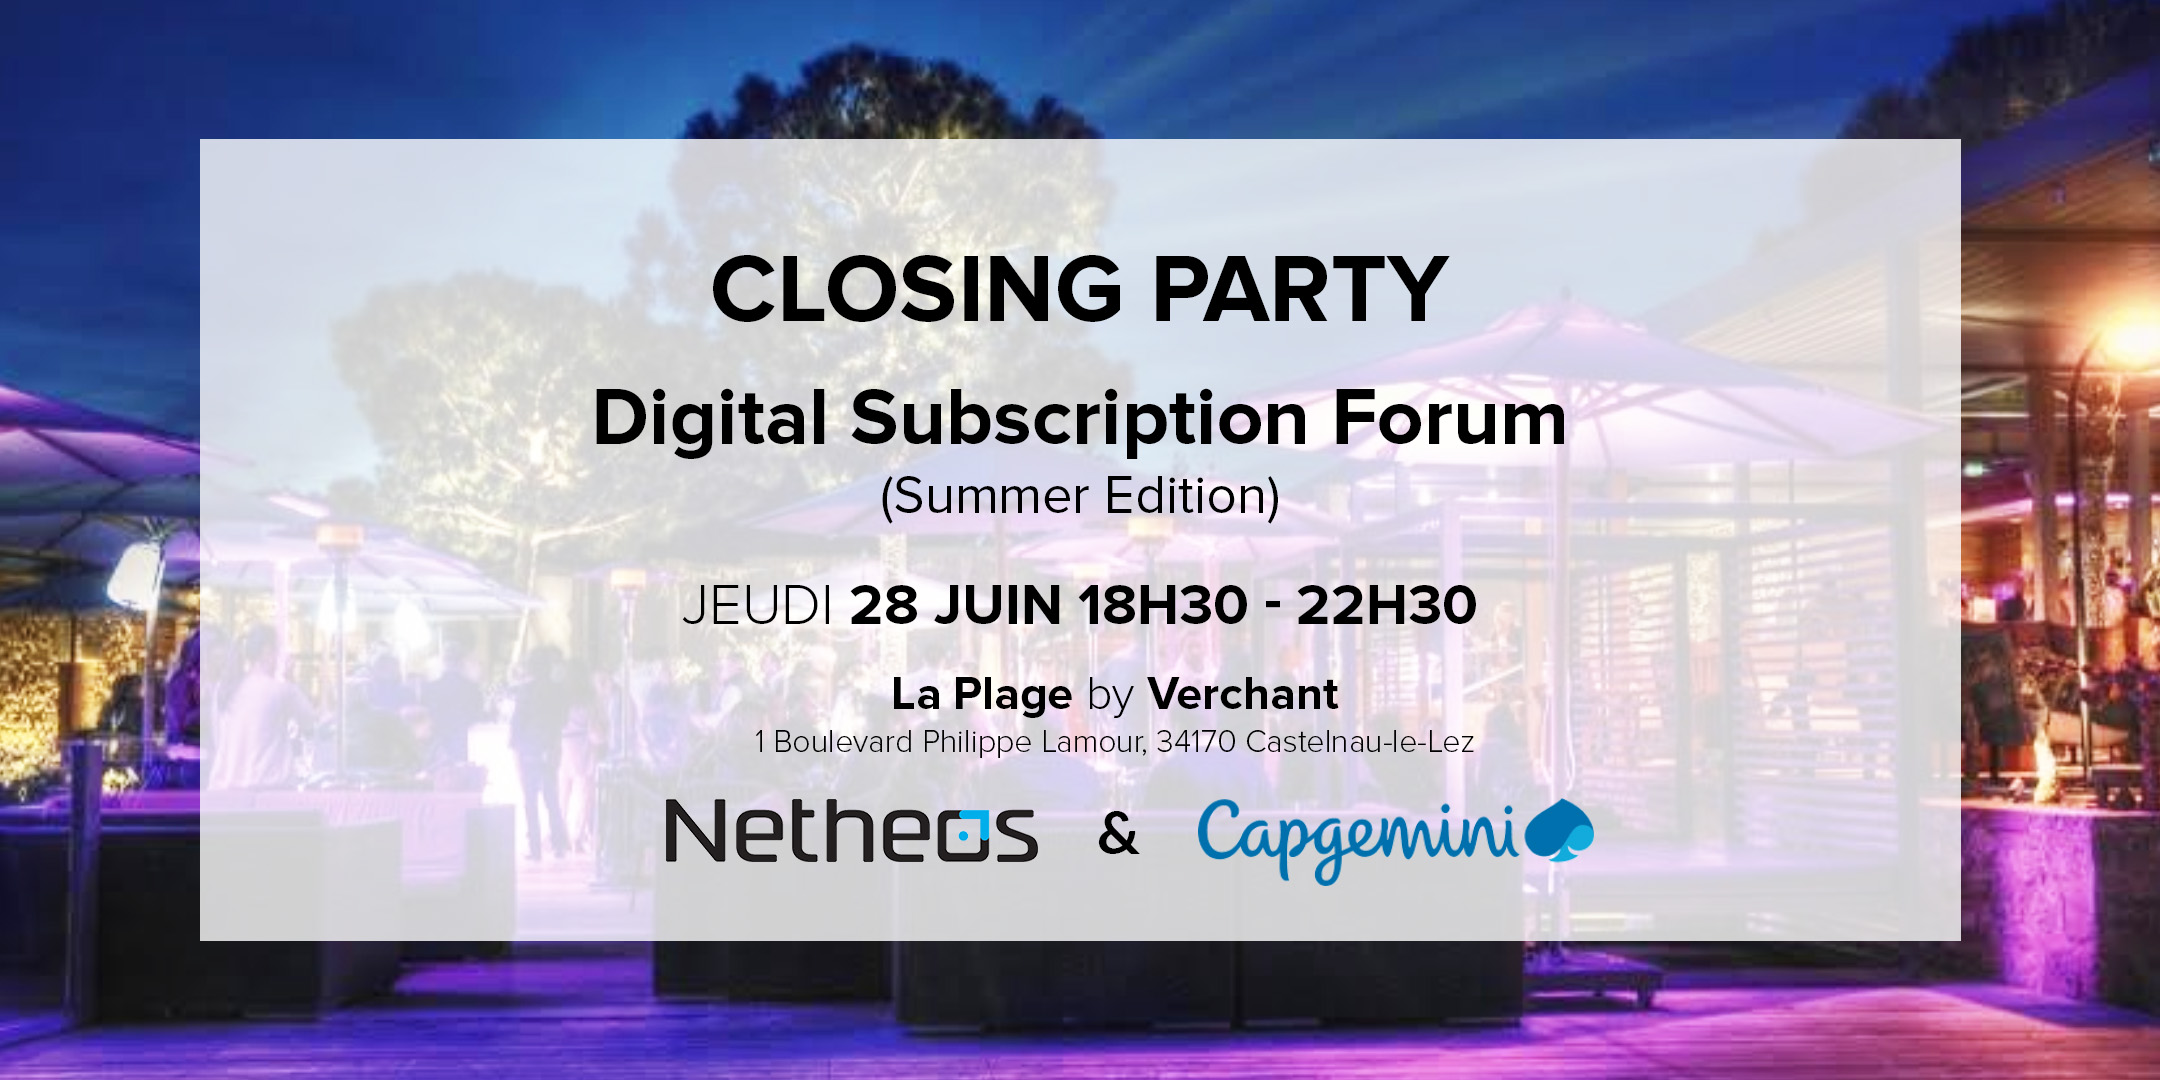 CLOSING PARTY - Digital Subscription Forum (Summer Edition)